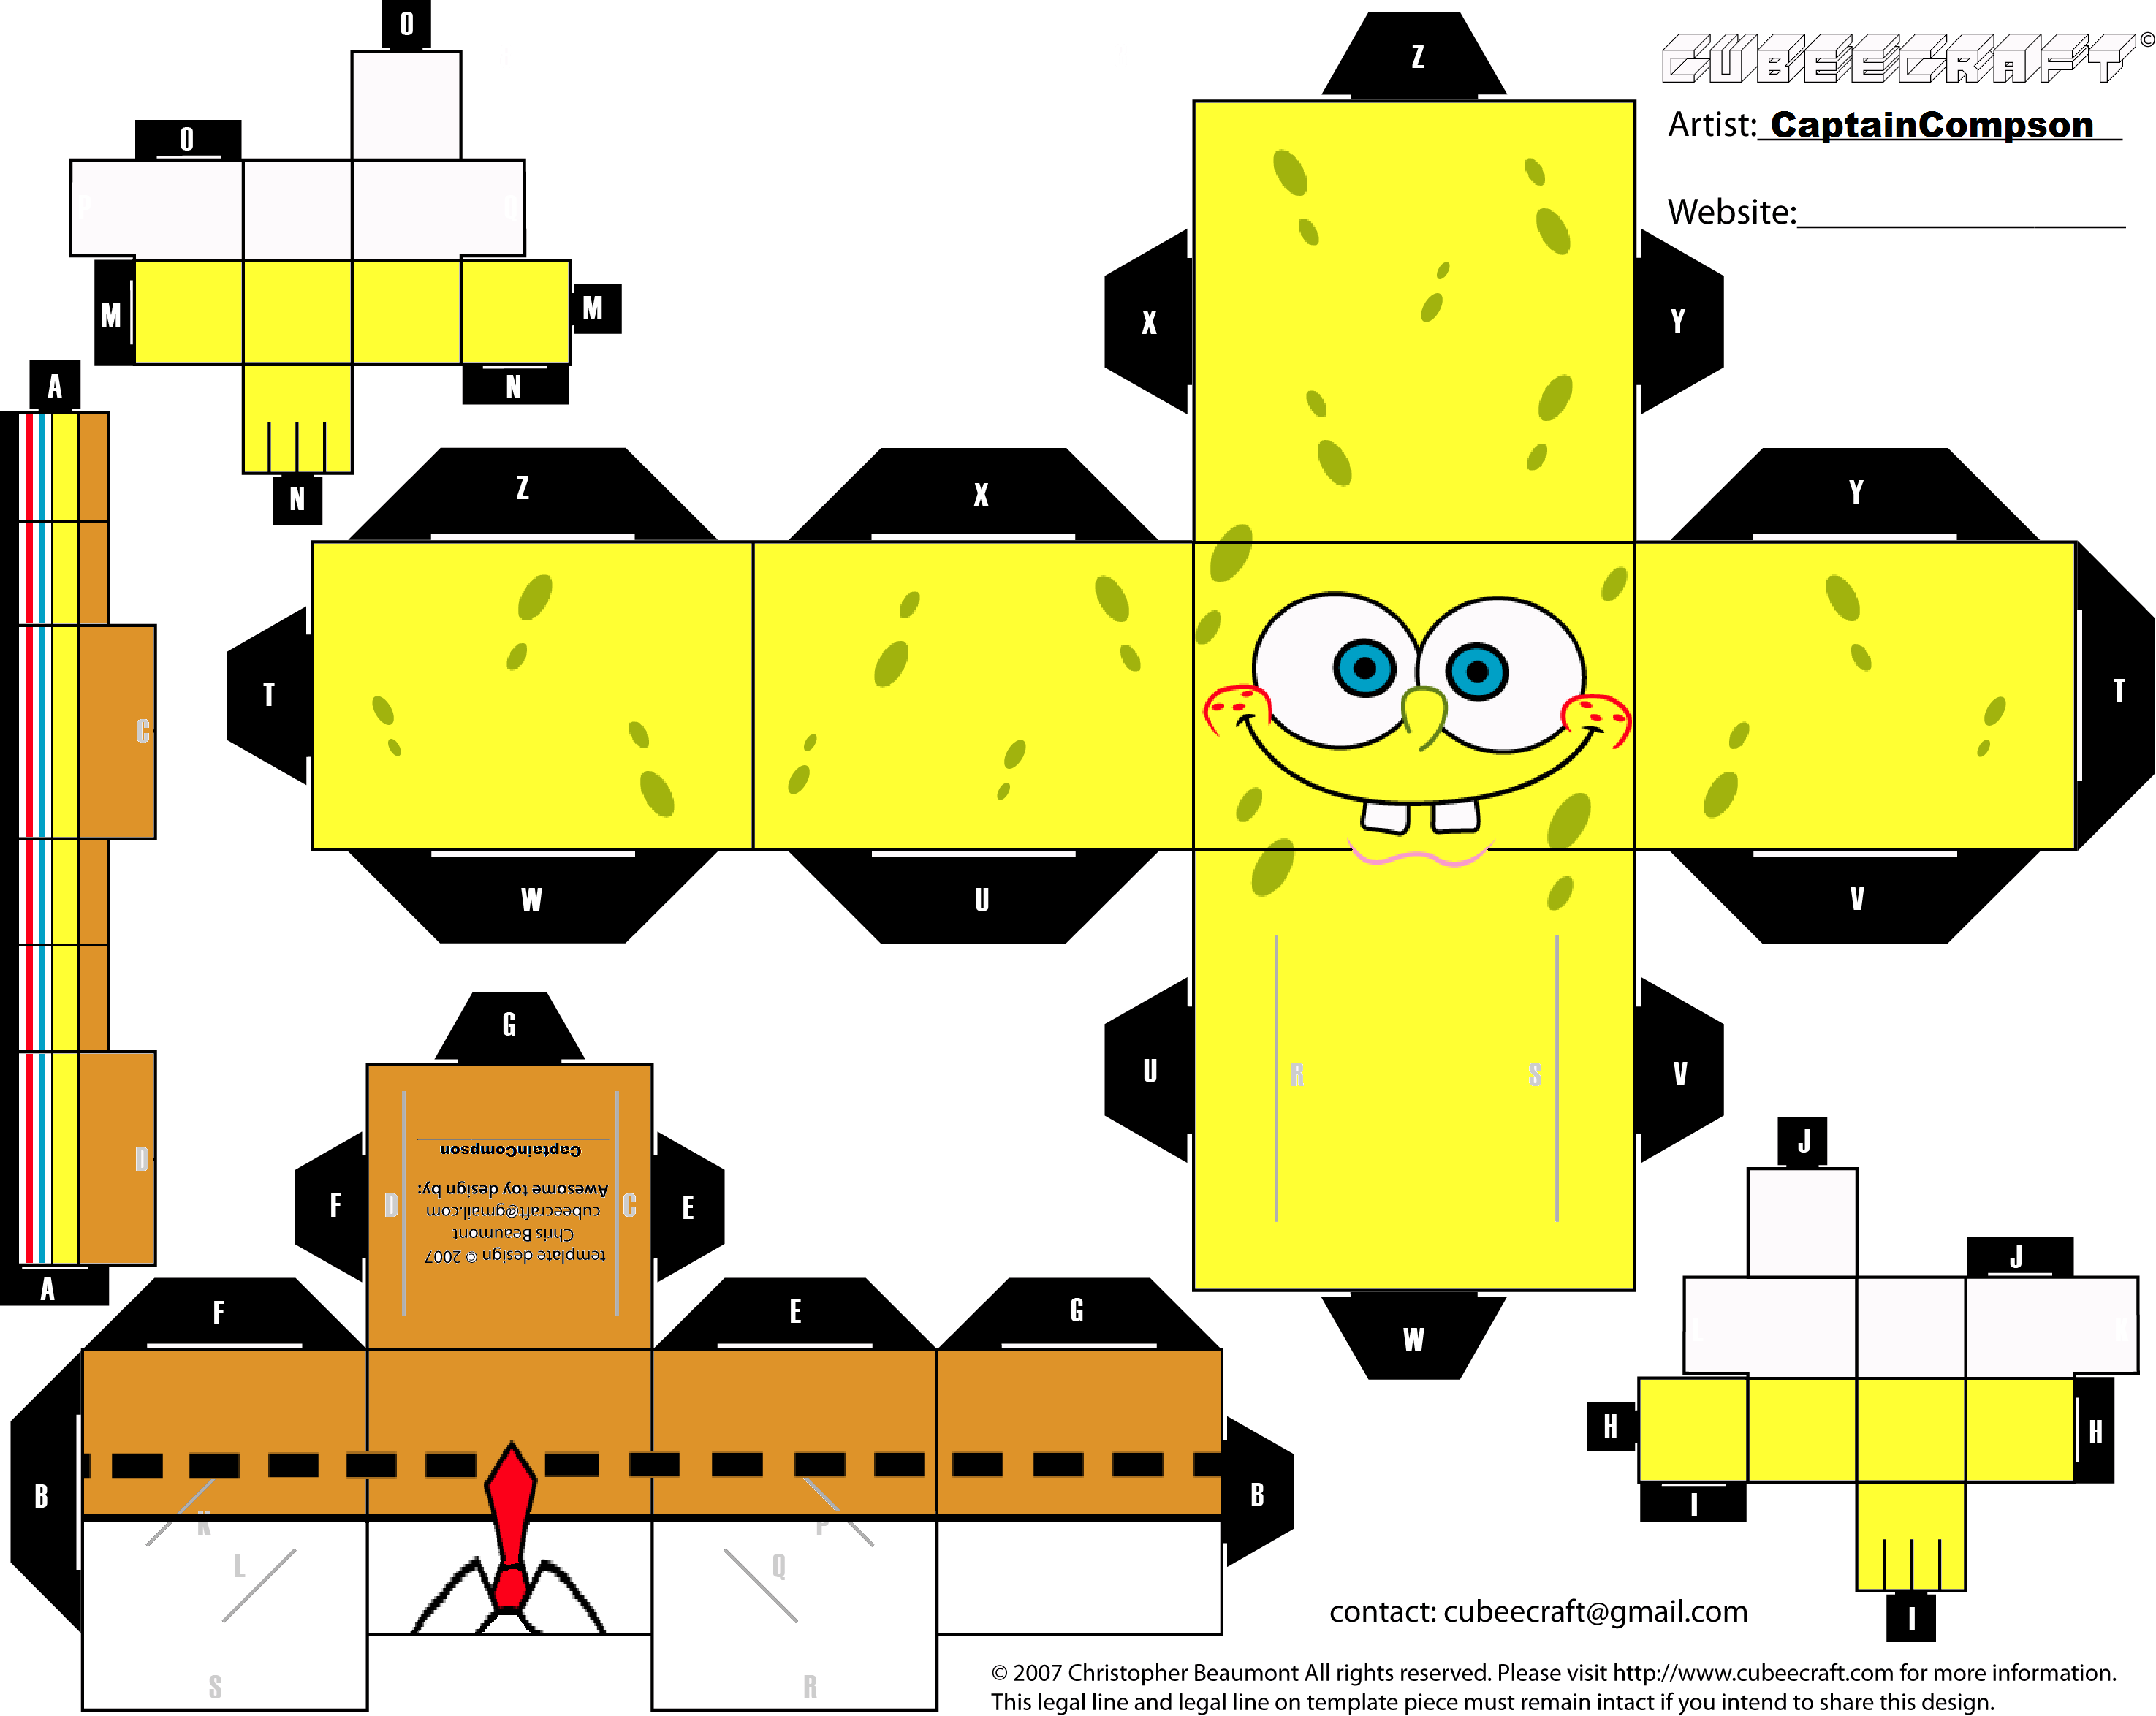 Spongebob_Cubeecraft_by_captaincompson